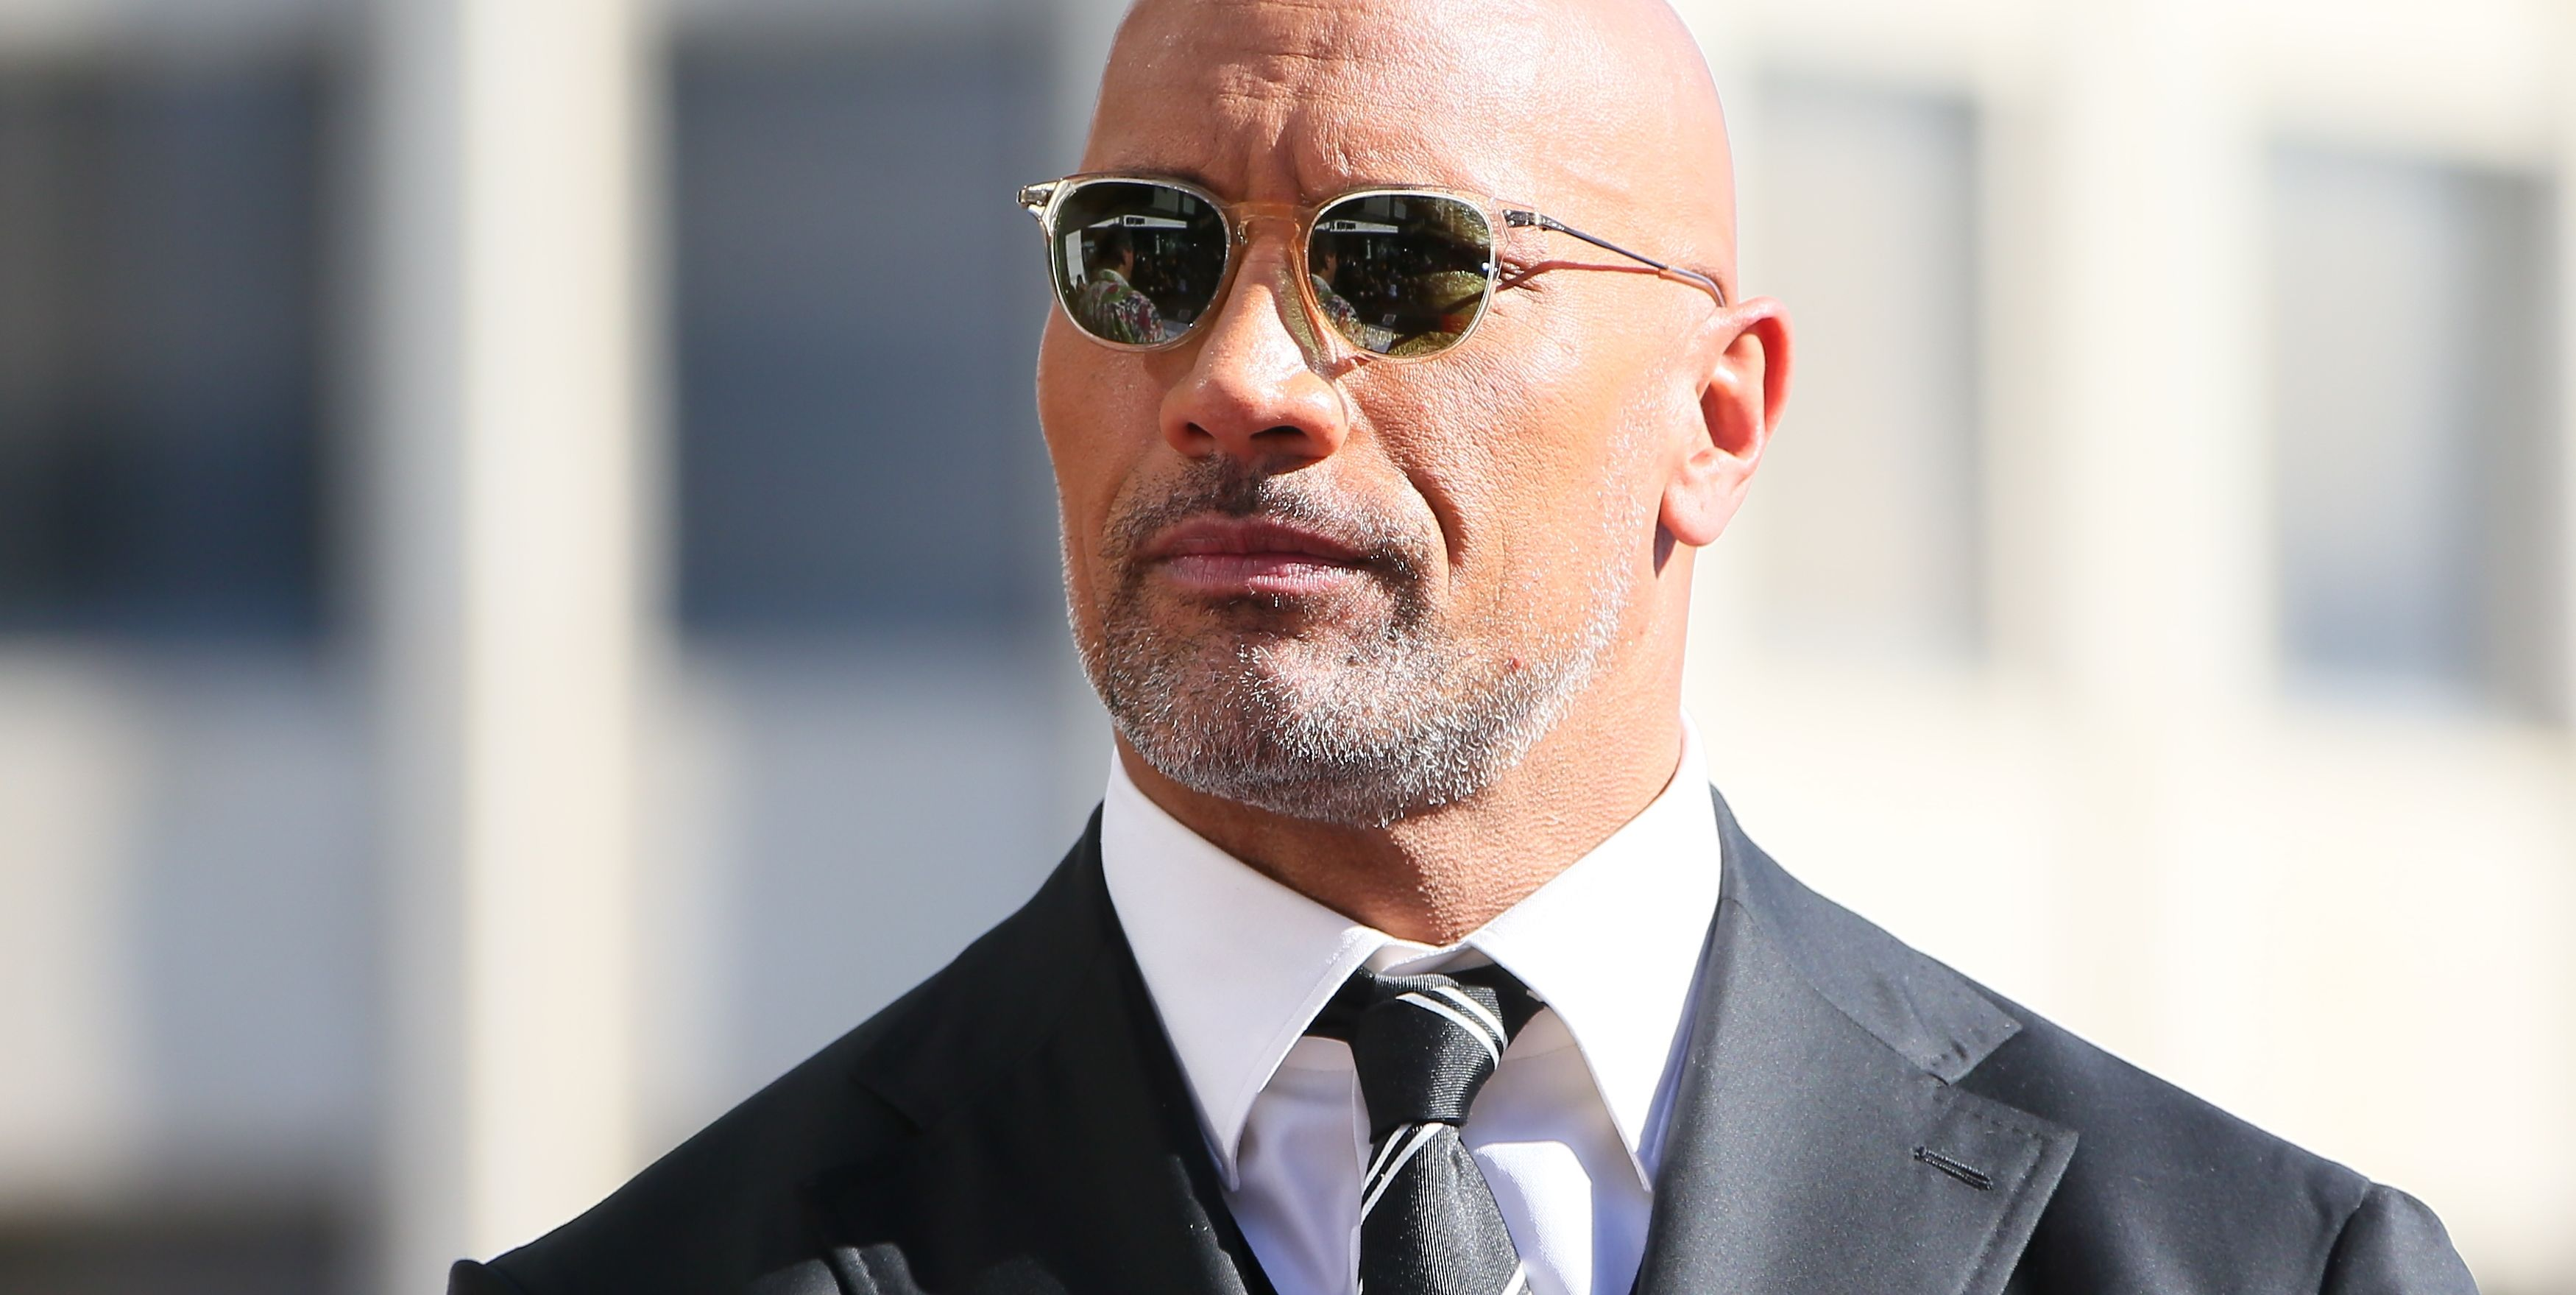 The Rock on Depression: 'You've Got to Talk About It, and You're Not Alone'